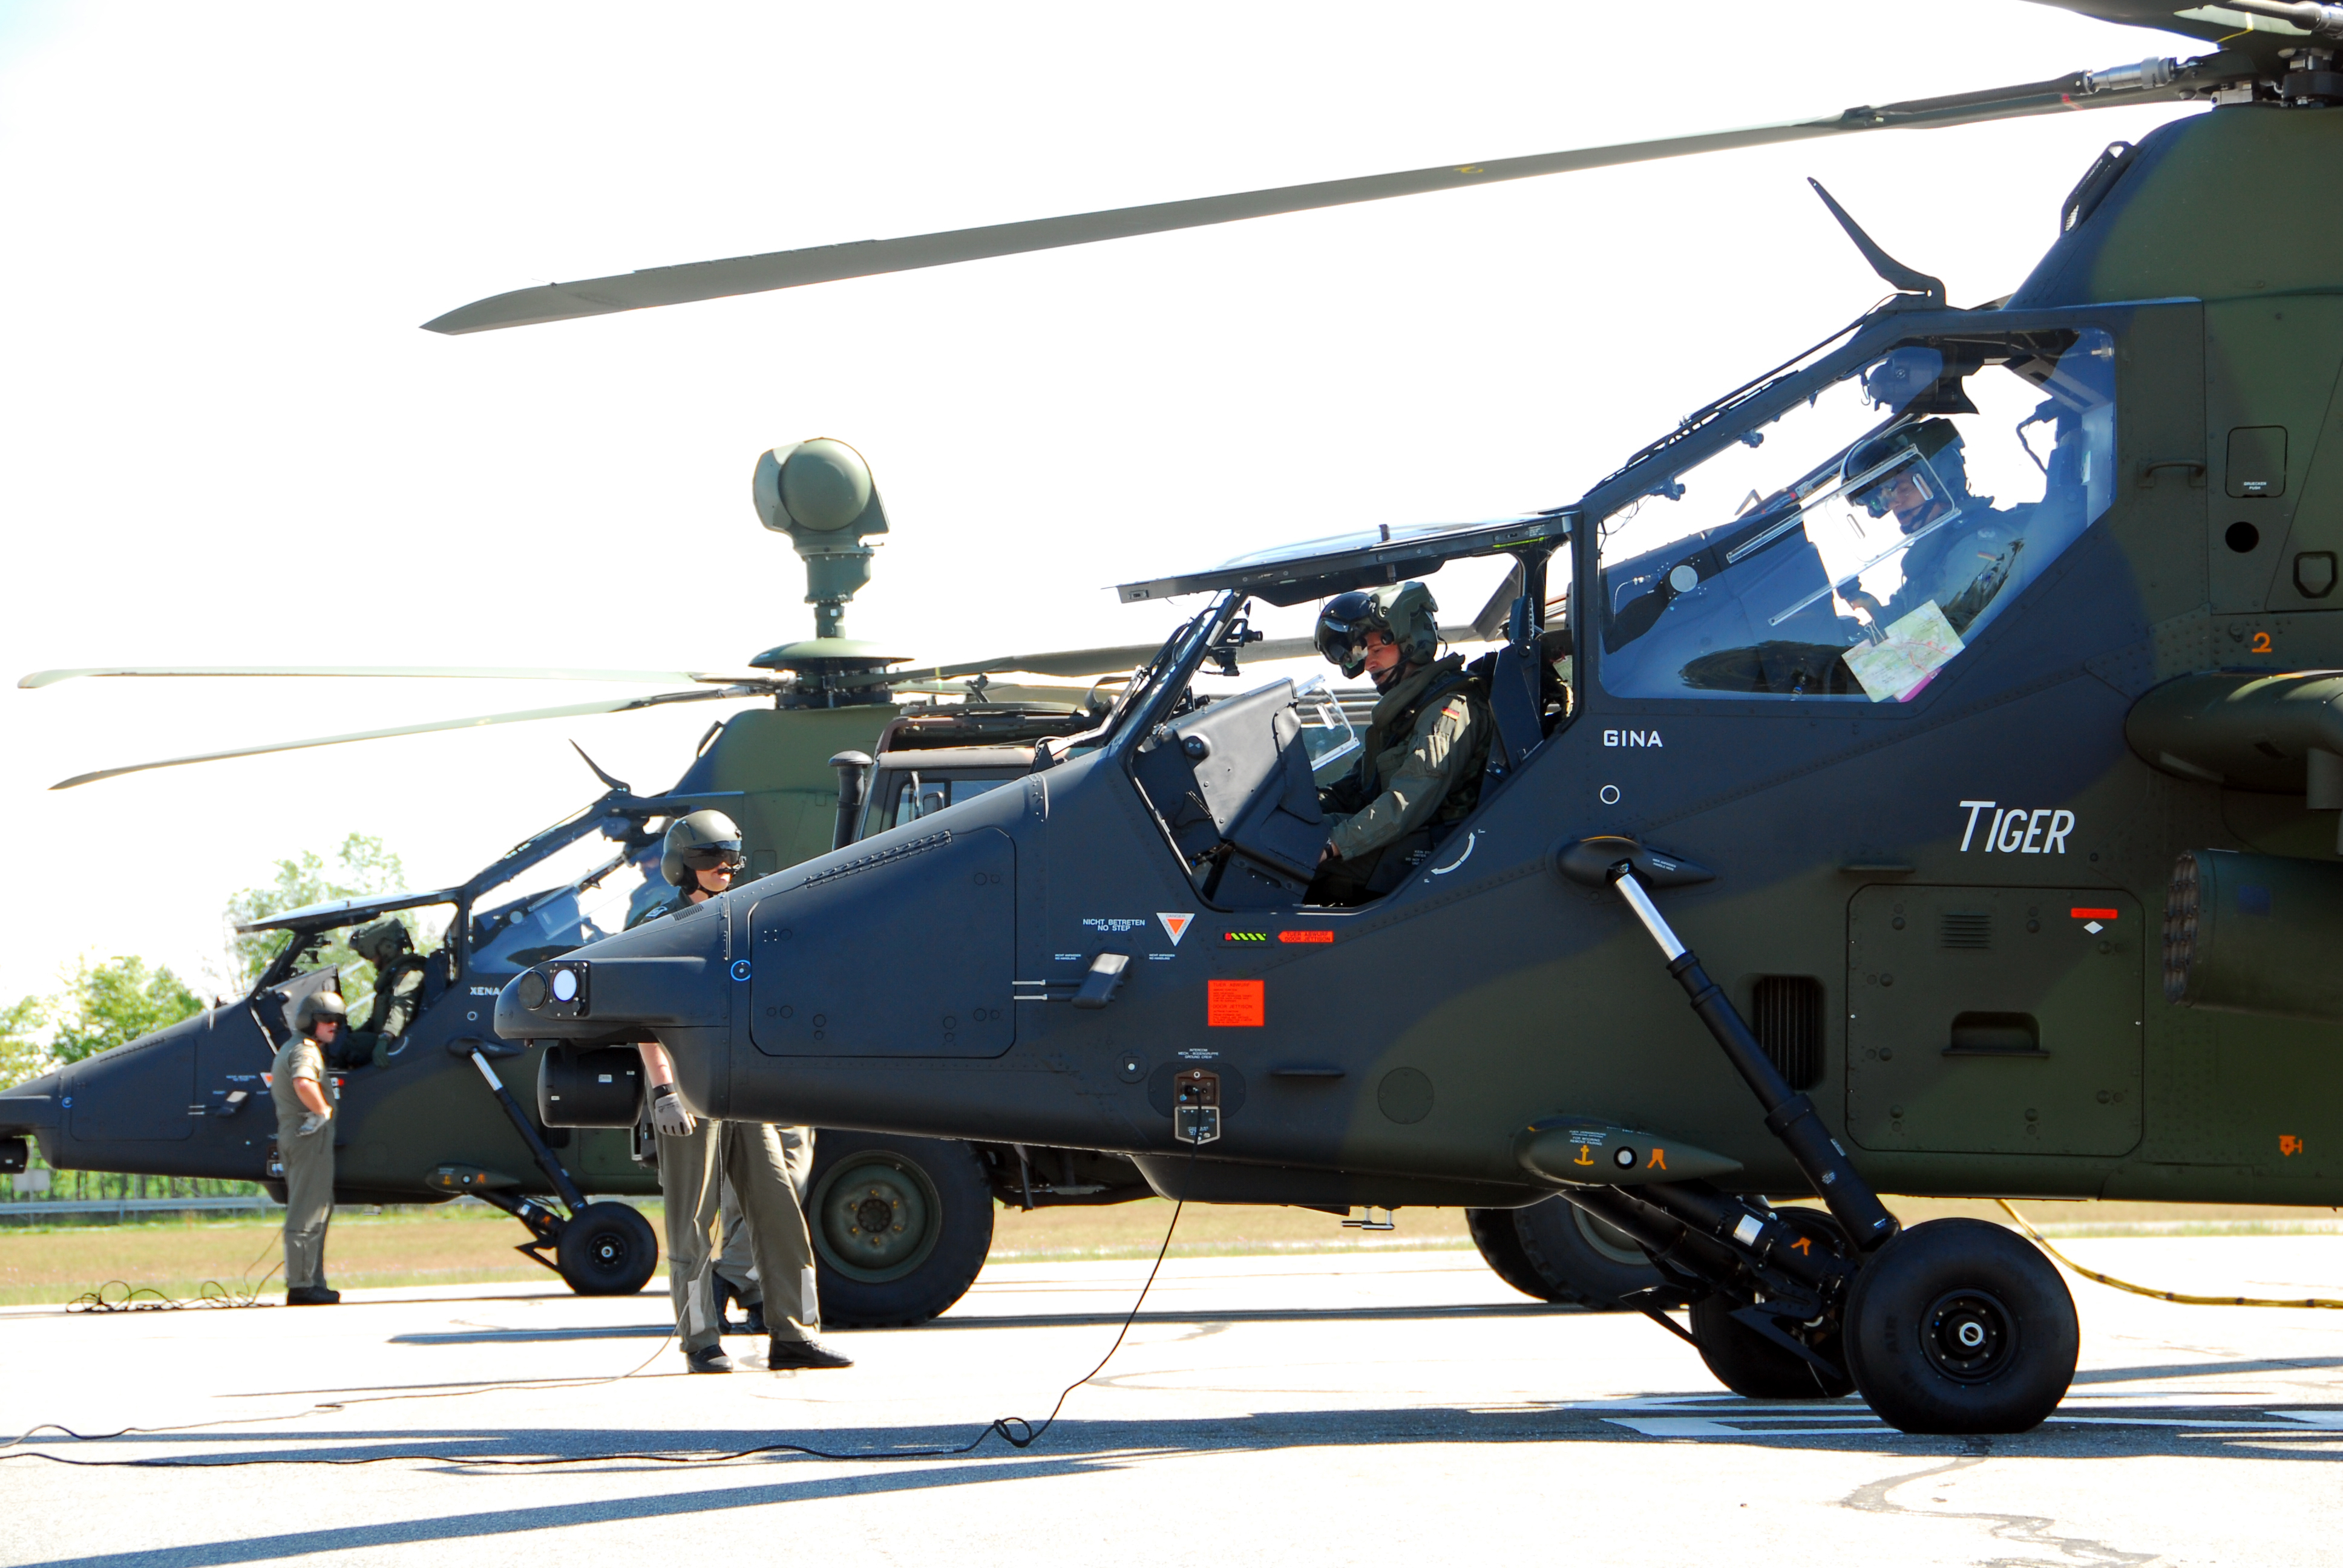 Eurocopter Tiger يوروكوبتر تايغر Two_German_Eurocopter_Tiger_attack_helicopters